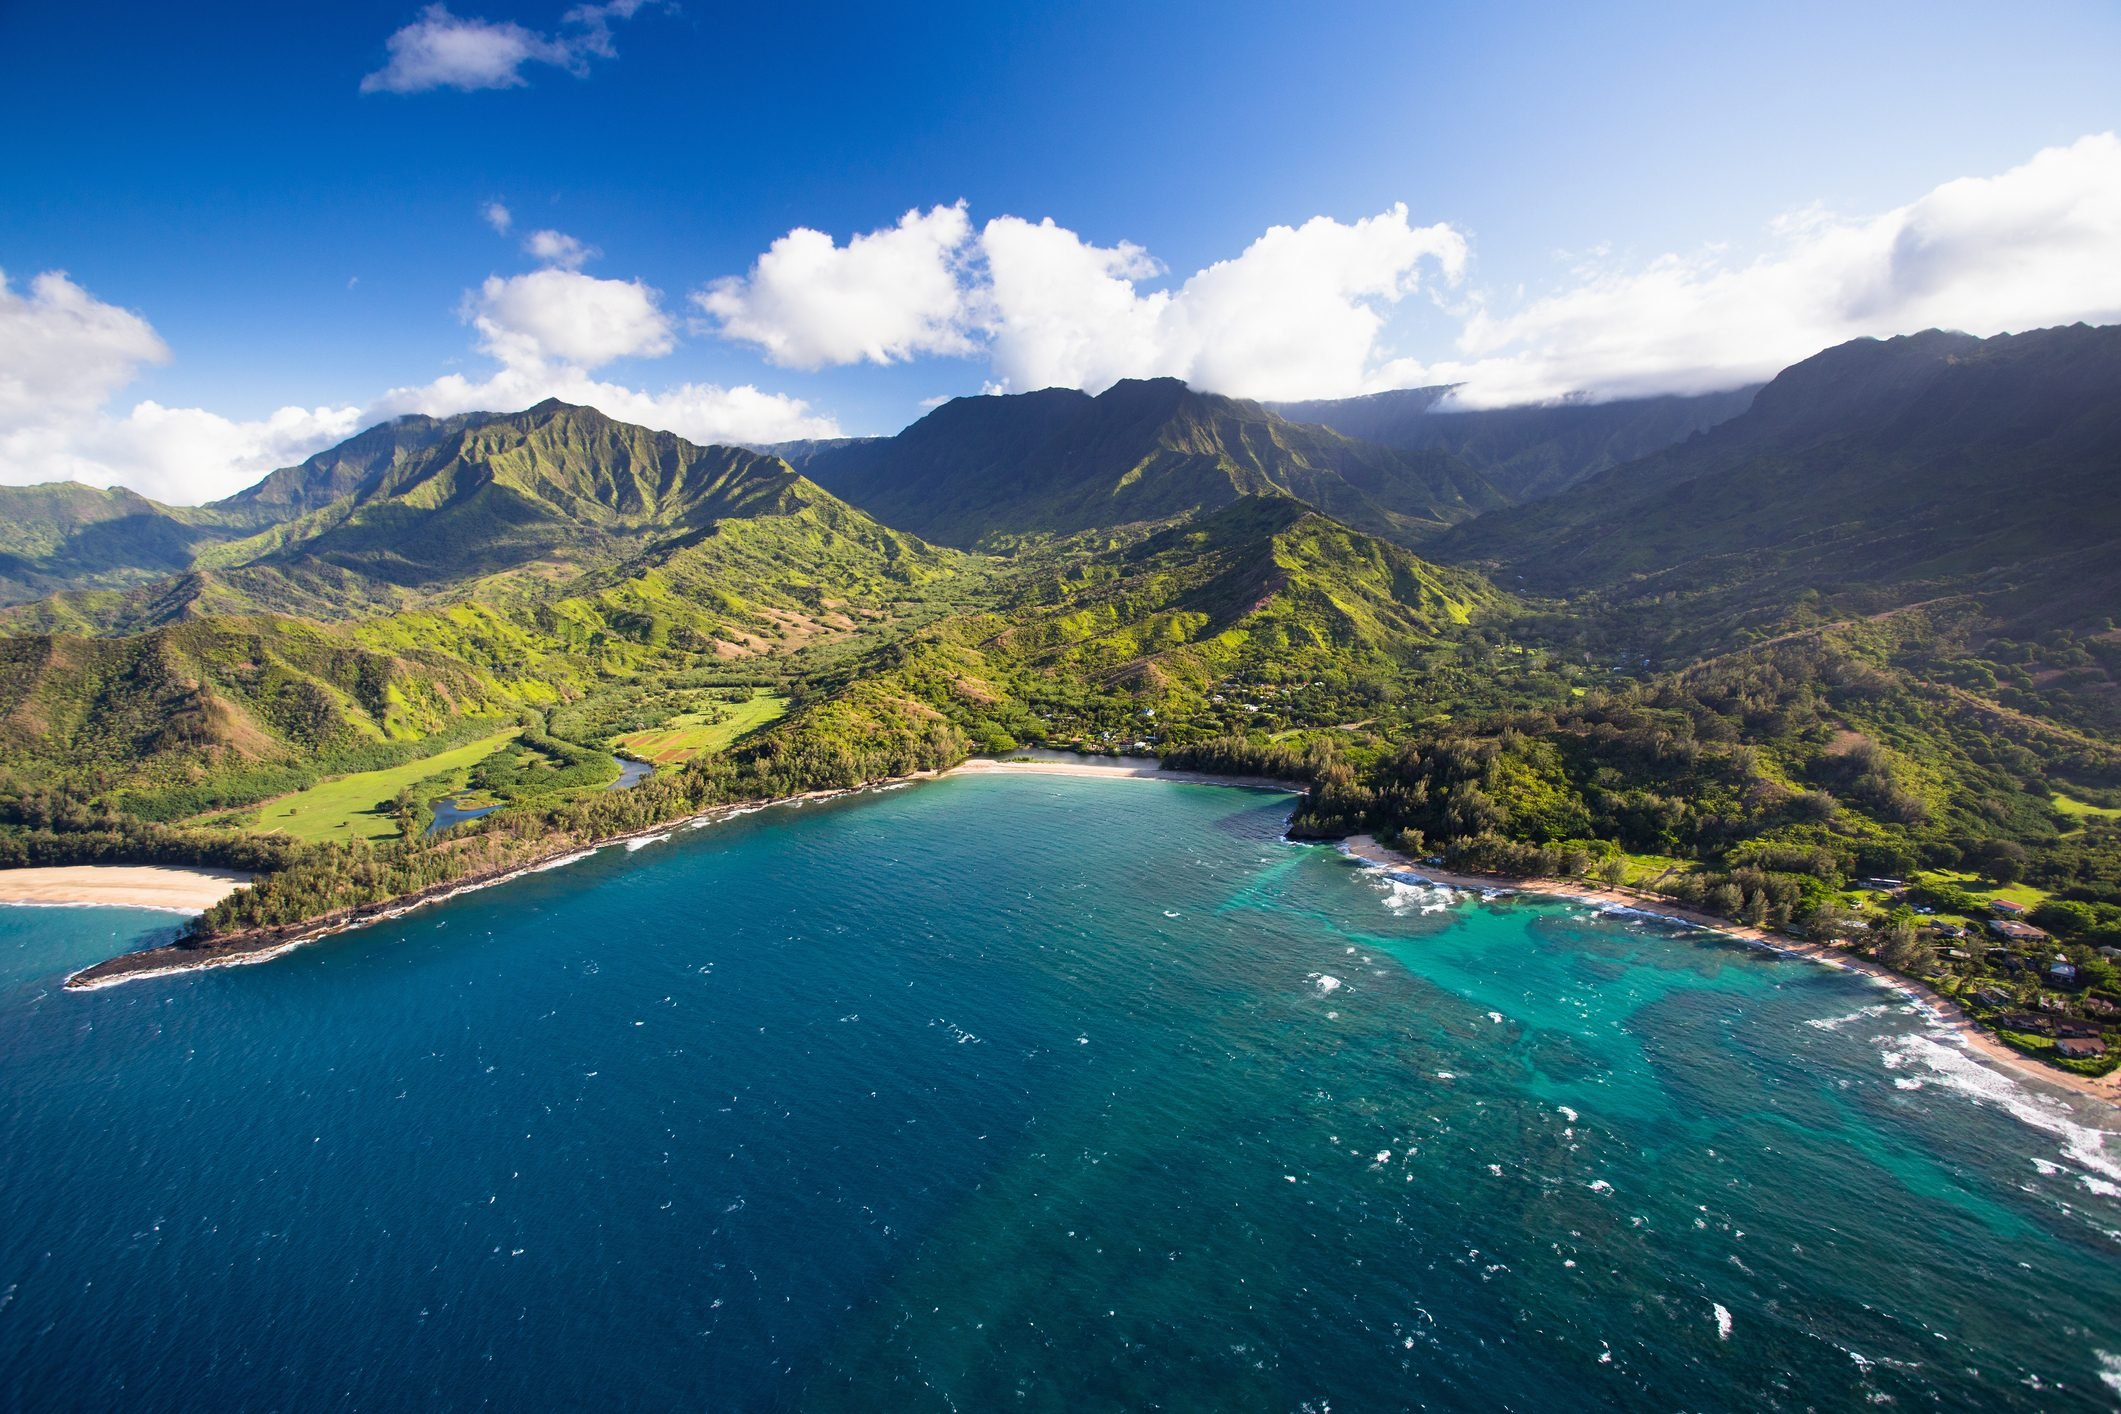 Scenic aerial views of Kauai from above